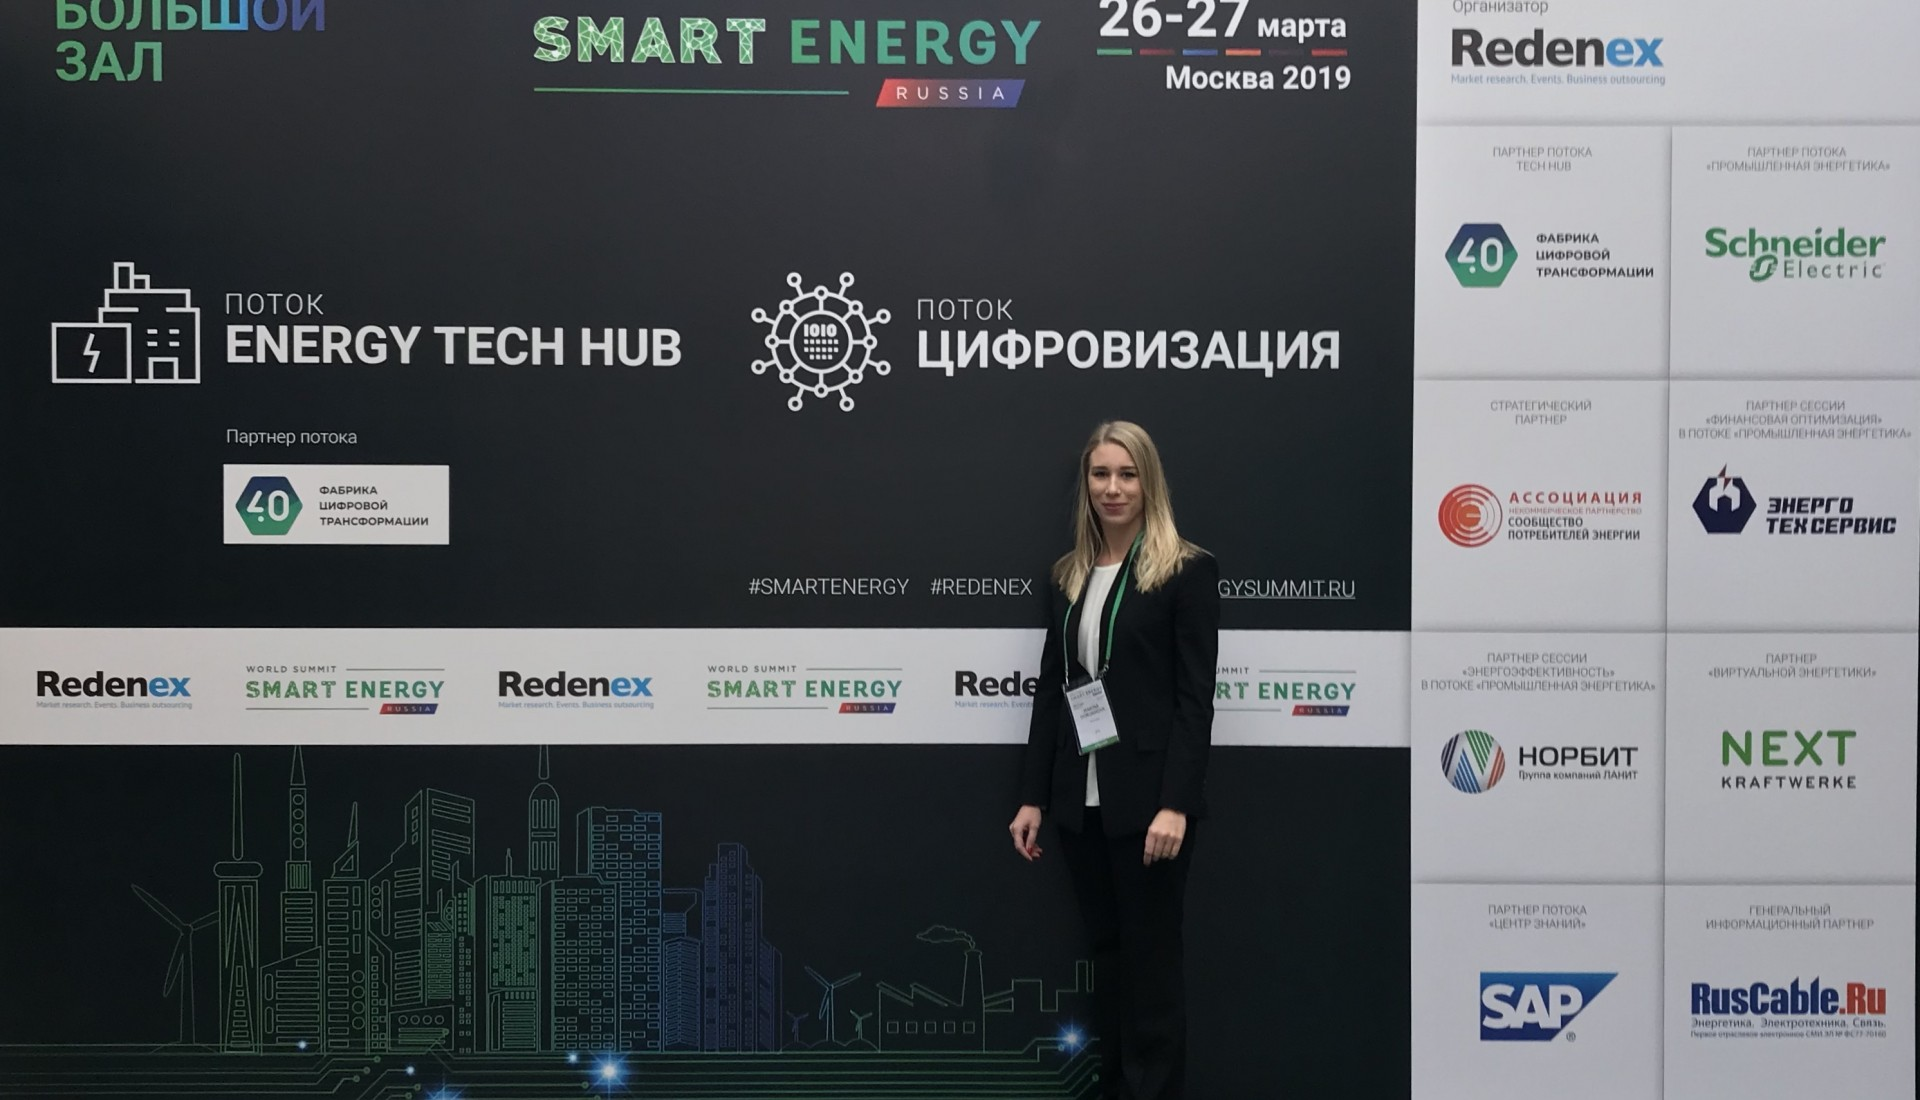 the-feedback-project-participated-in-the-iii-world-smart-energy-summit